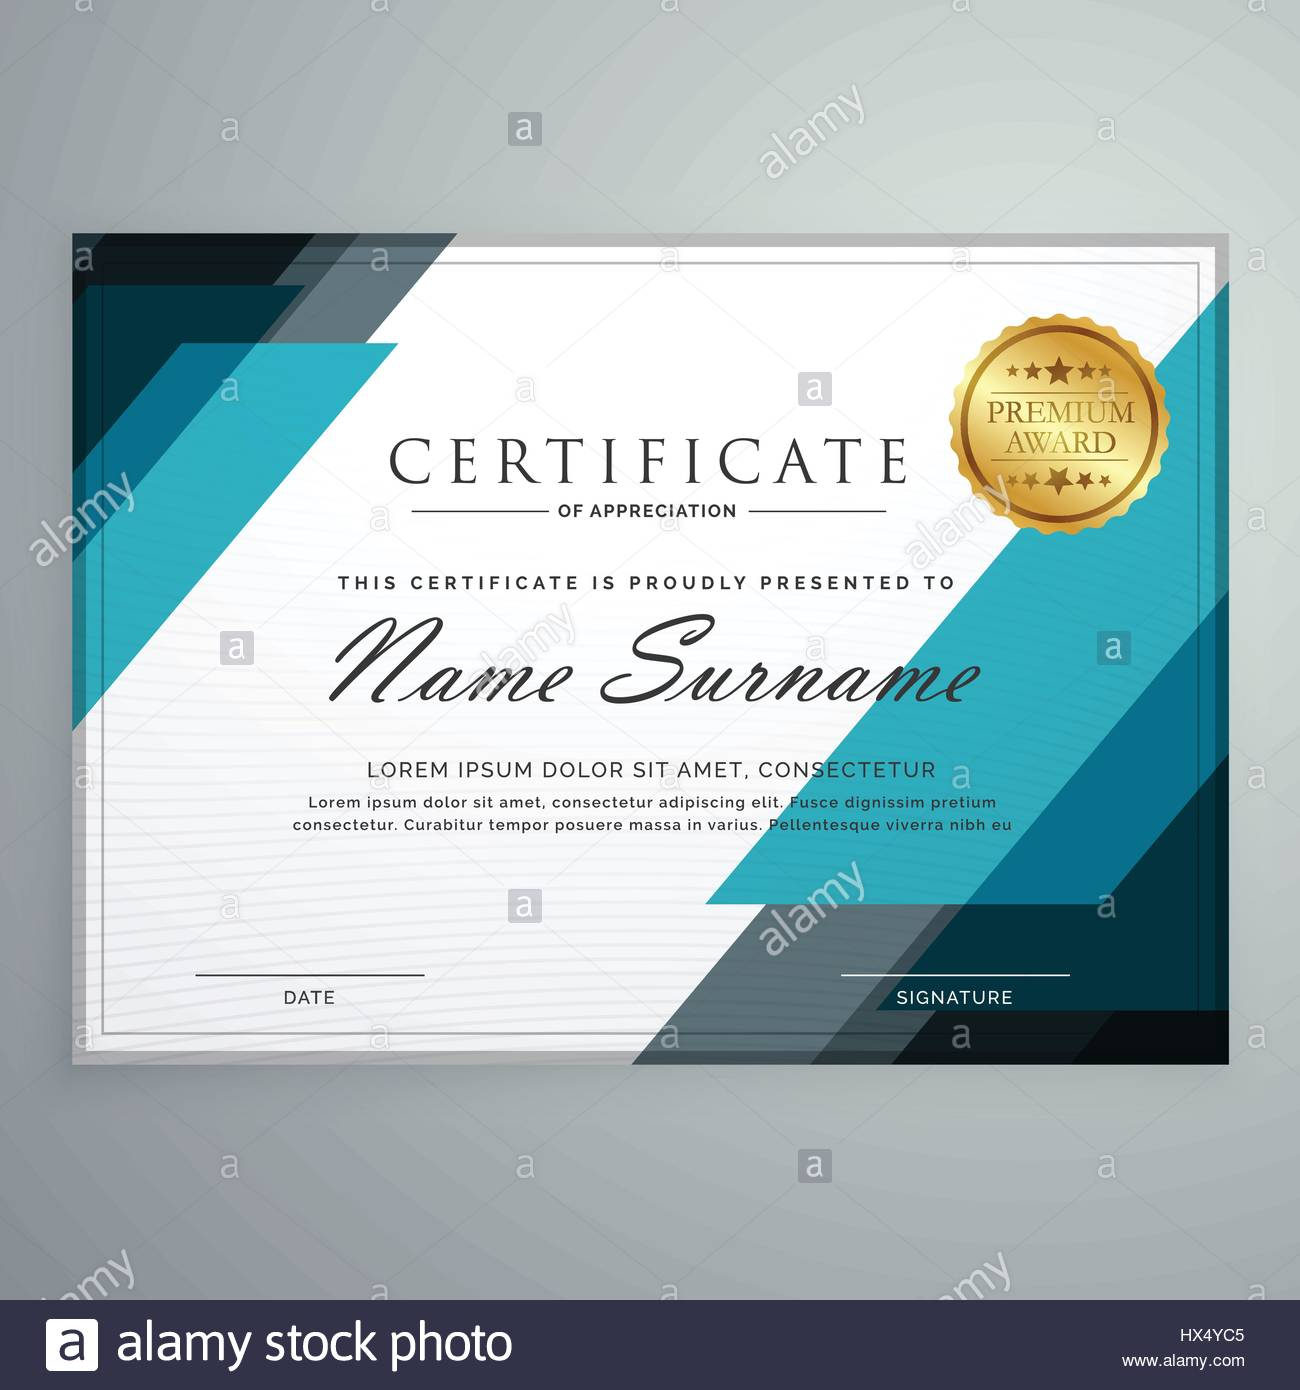 Stylish certificate of appreciation award design template with stylish certificate of appreciation award design template with geometric shapes yadclub Images